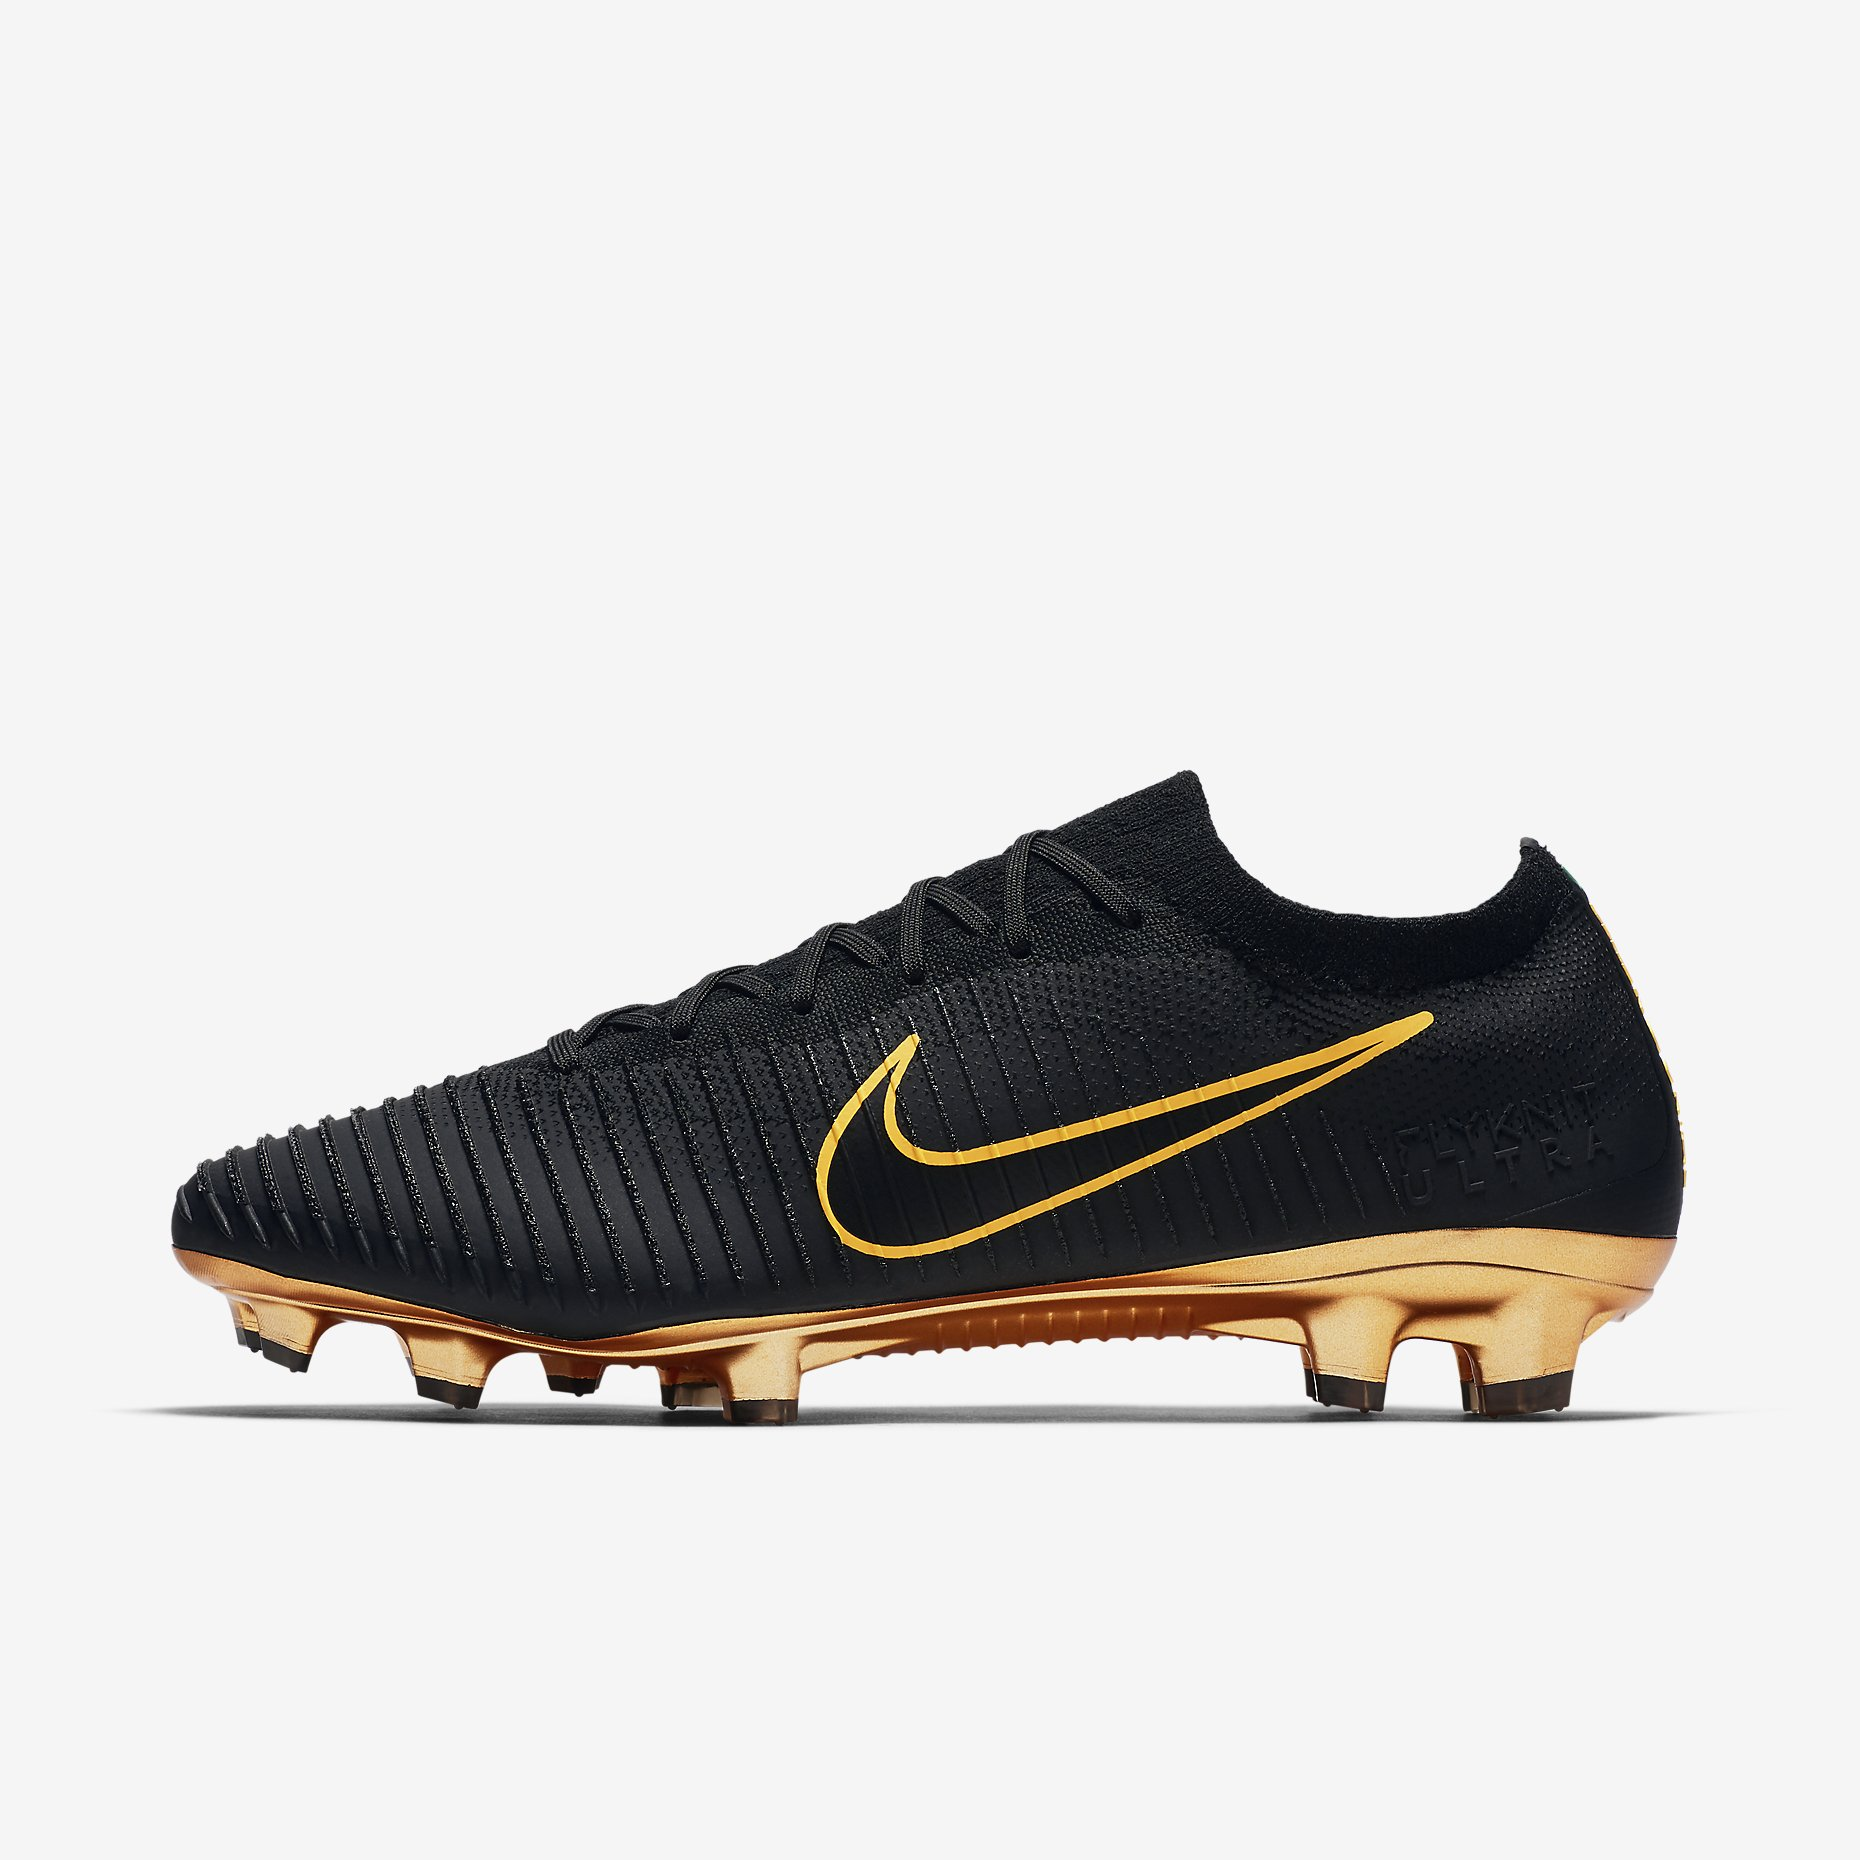 5a327e3ca642b ... black metallic gold colourway. Buy now · Click to enlarge image  nike flyknit ultra fg black metallic vivid gold black a.jpg ...